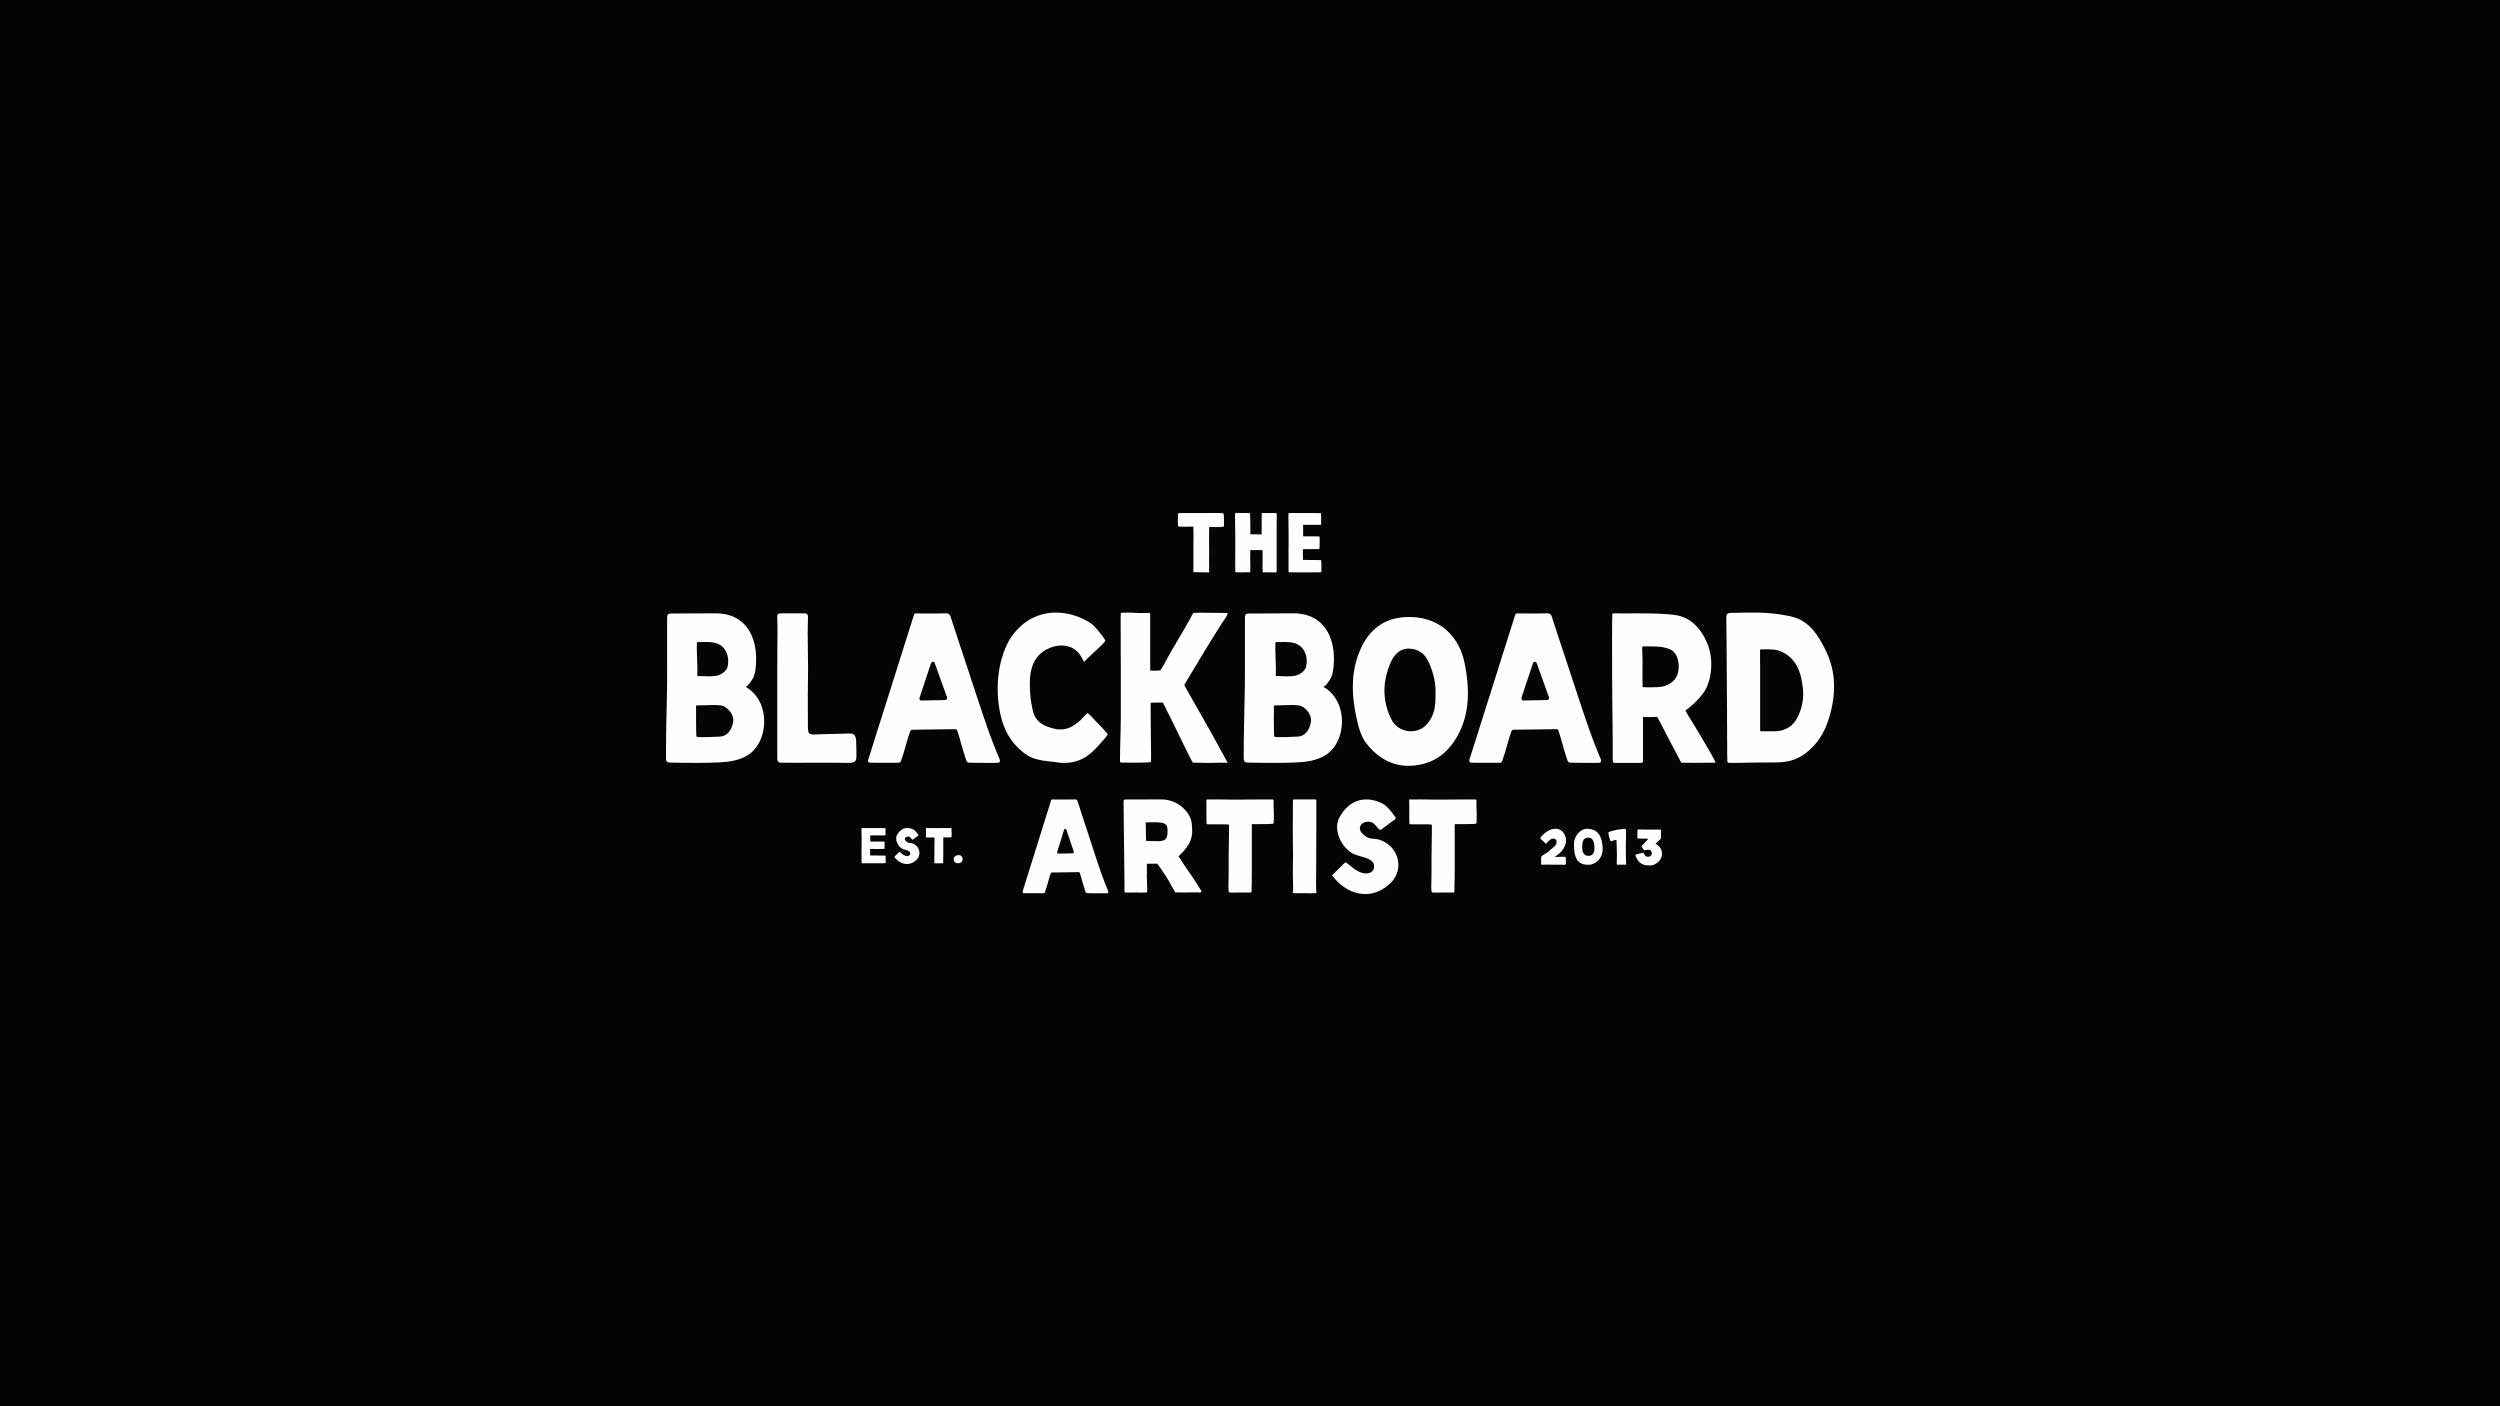 The Blackboard Artist logo